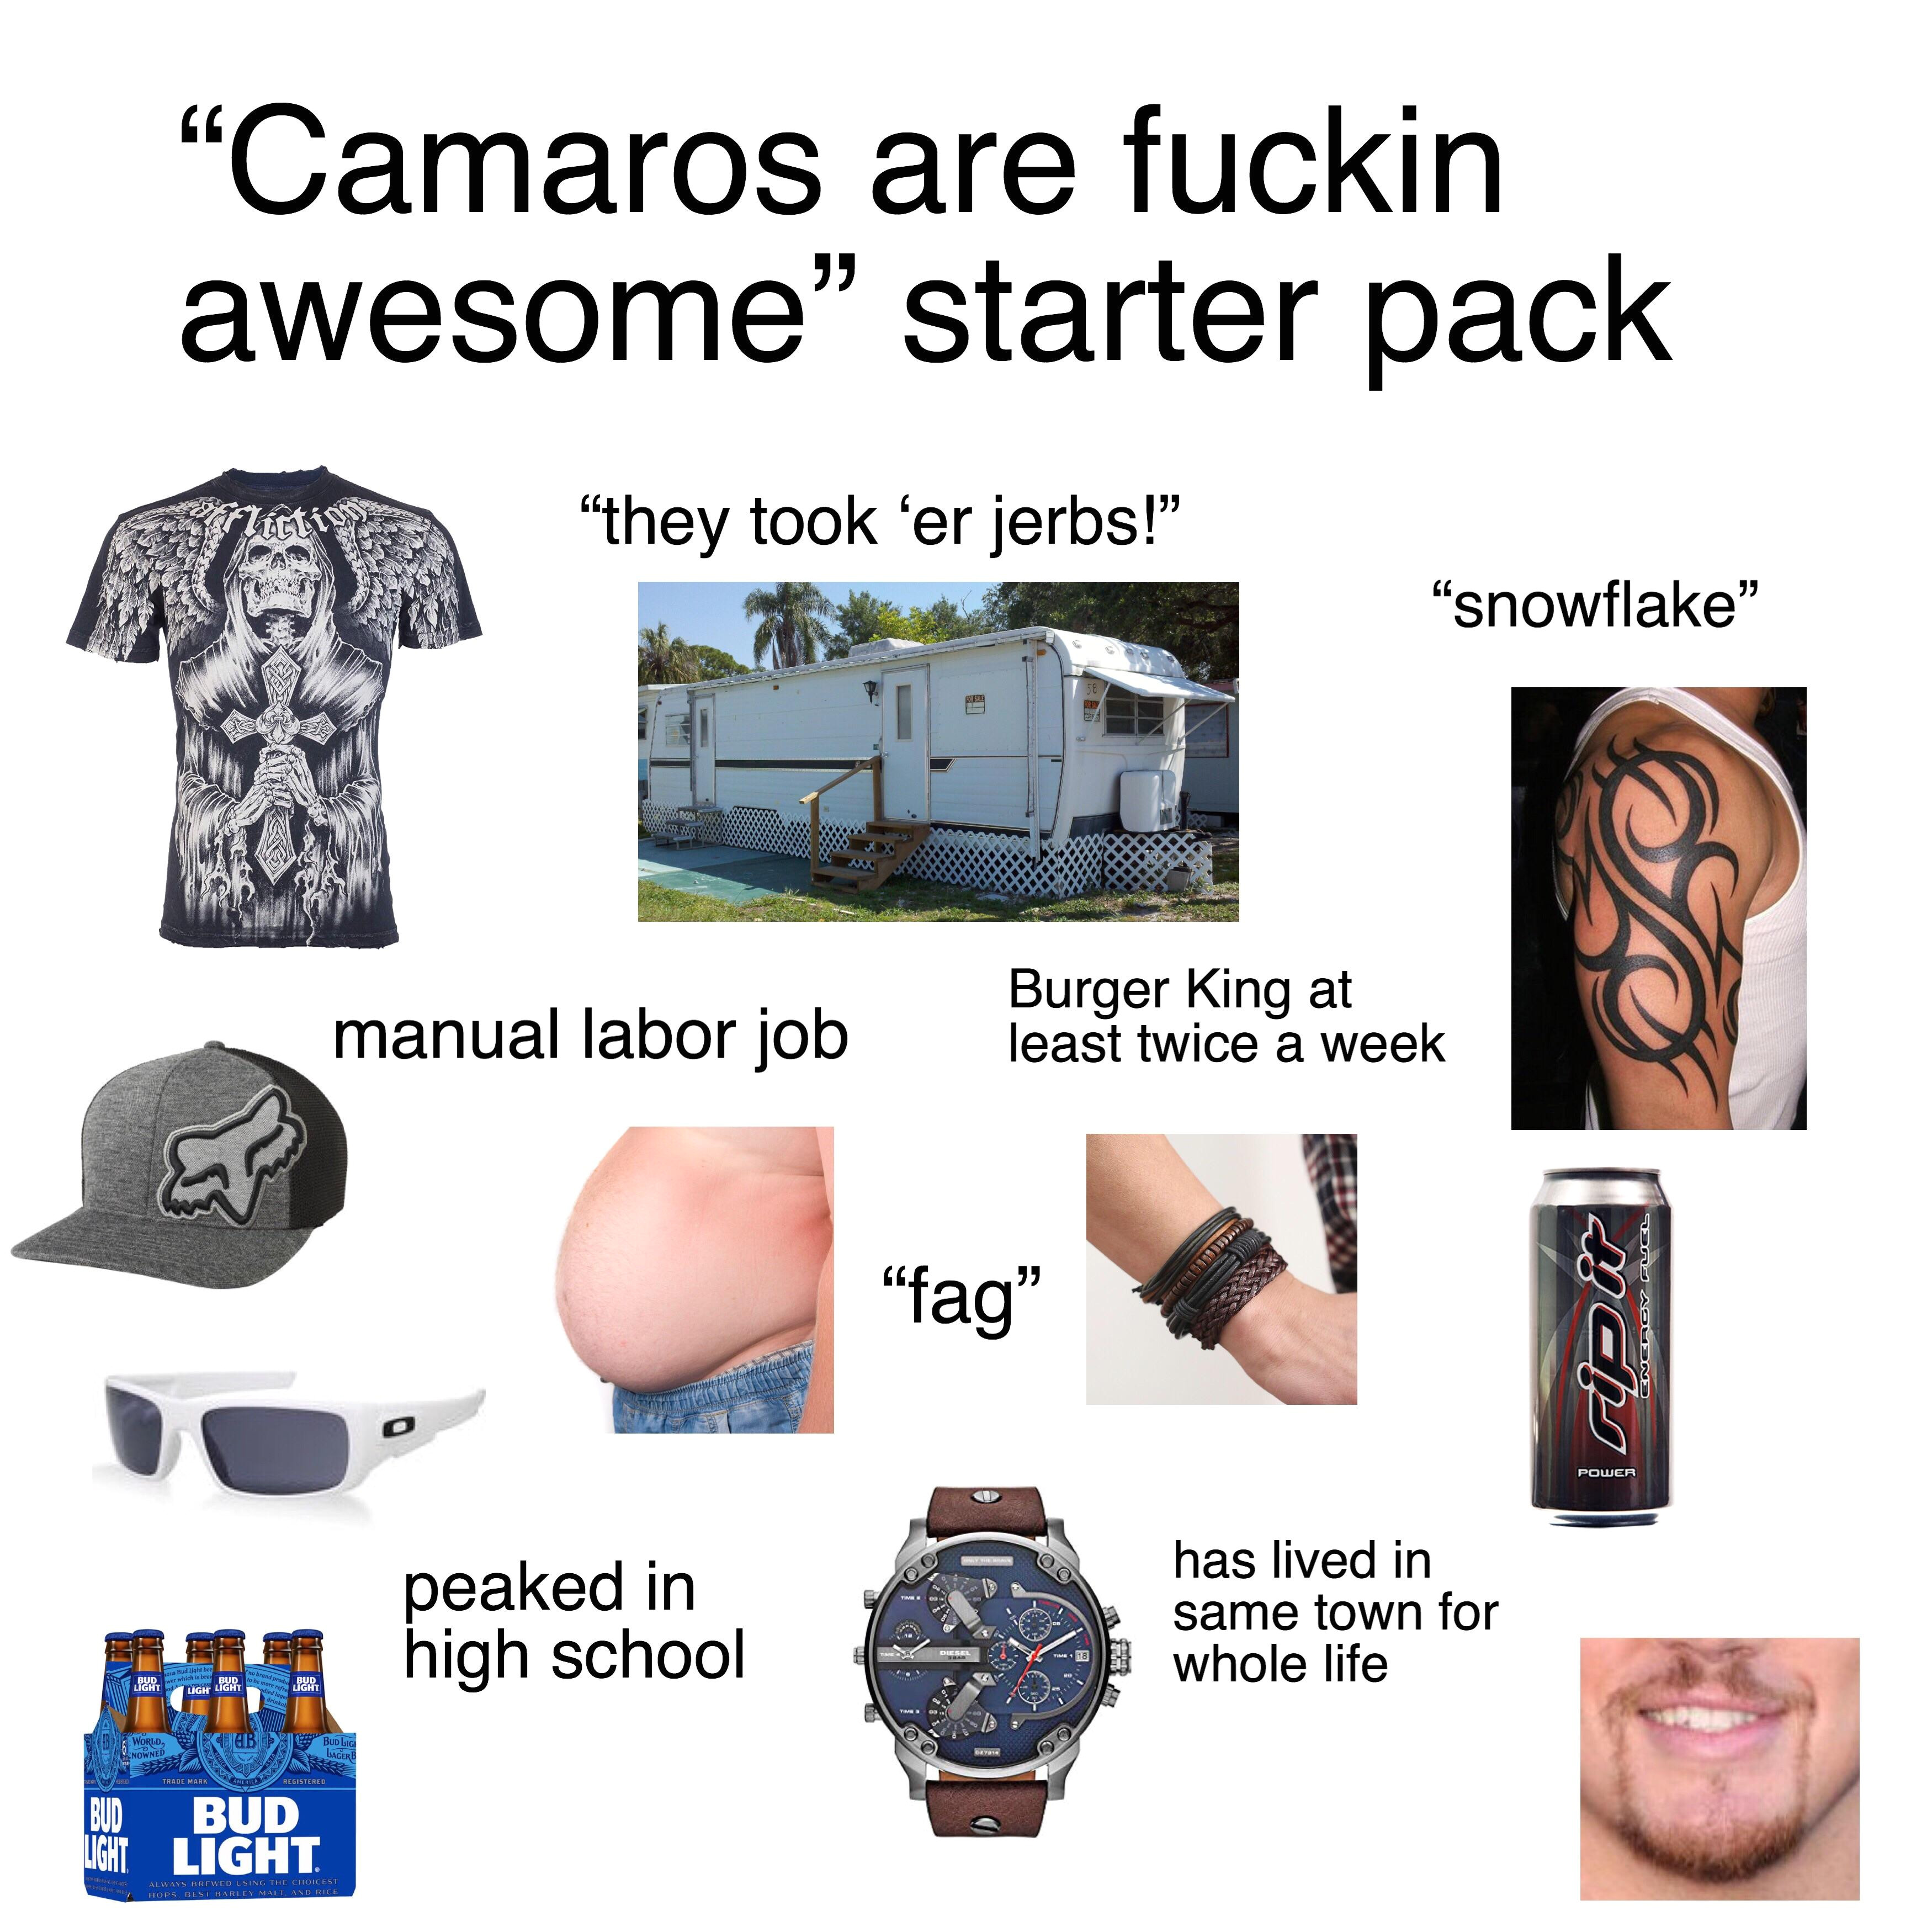 camaros are fuckin awesome starter pack